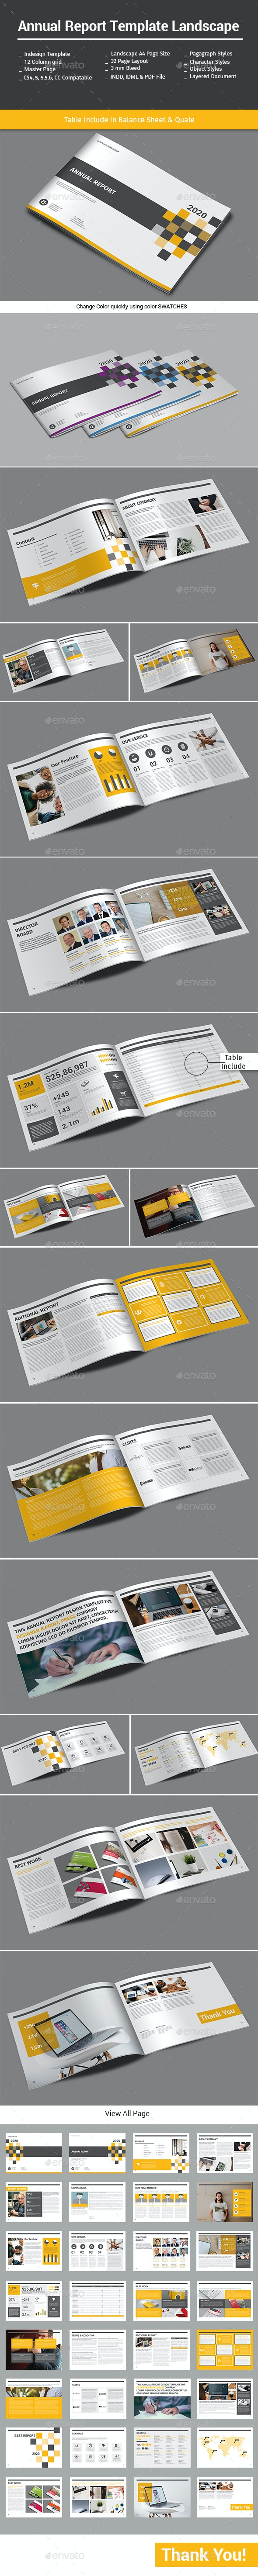 Annual Report Template Landscape - Informational Brochures